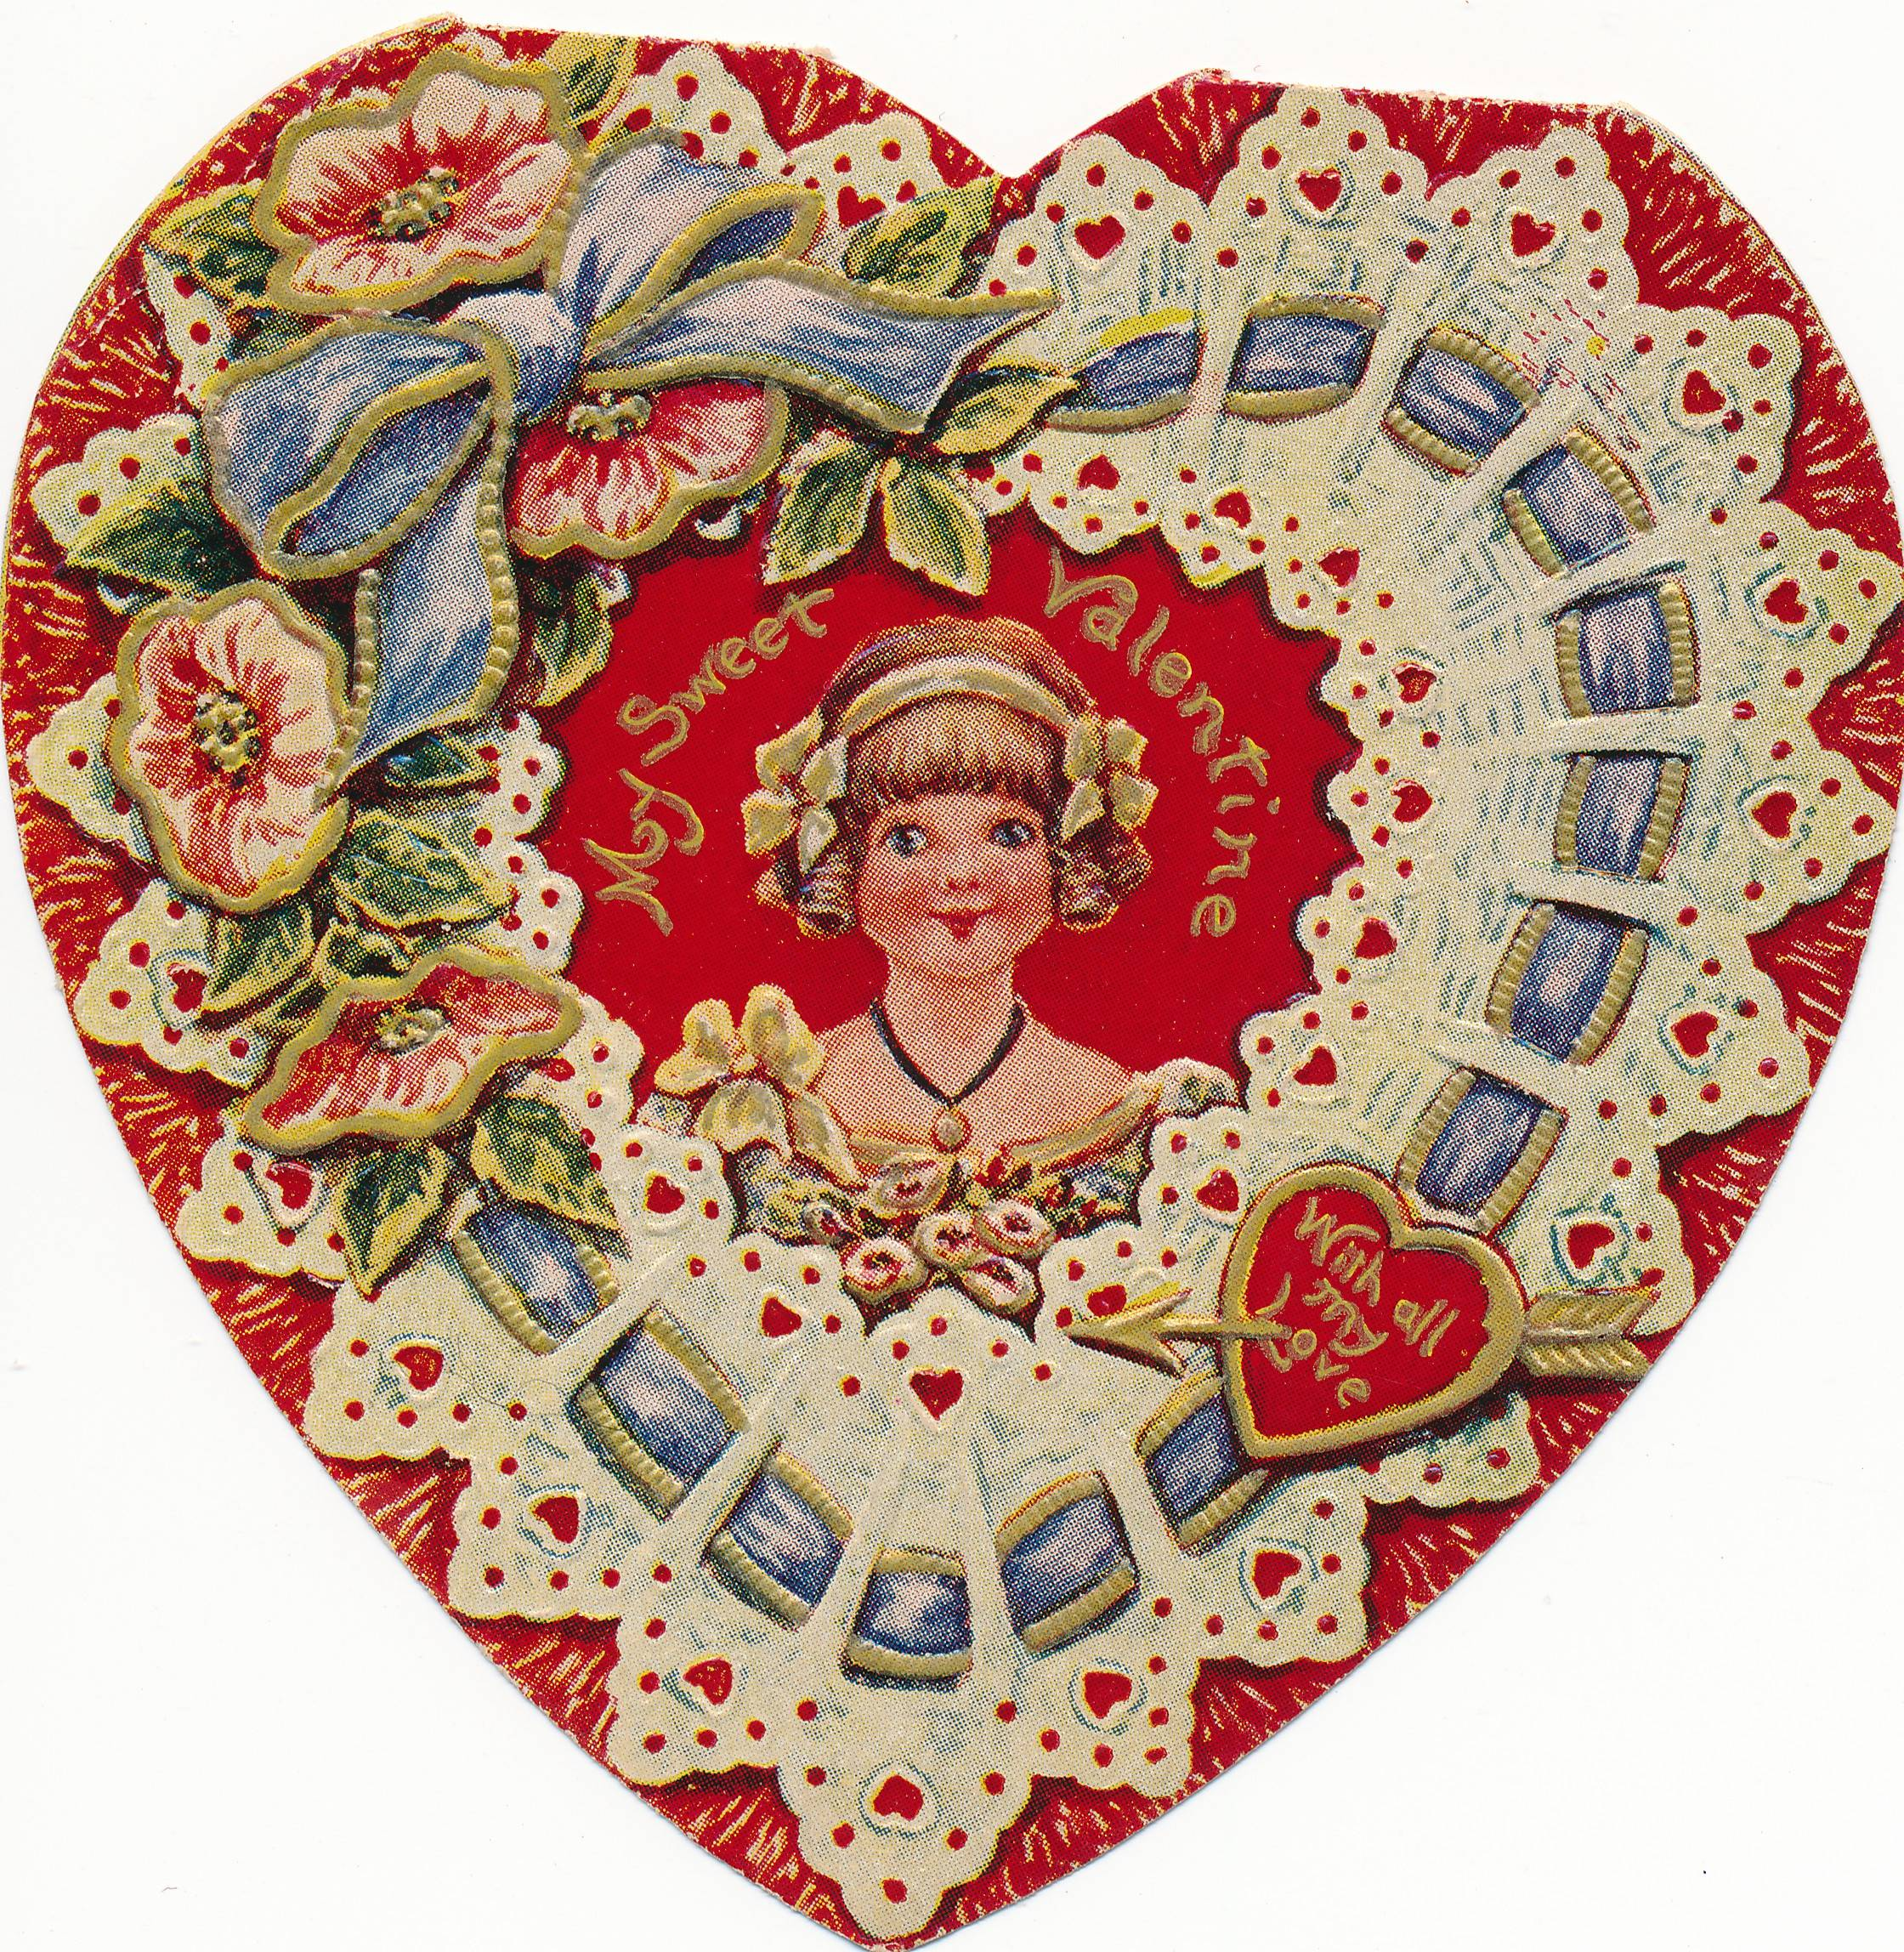 Circa 1935 valentine from the estate of lifelong resident Pearl Hoth Gates.